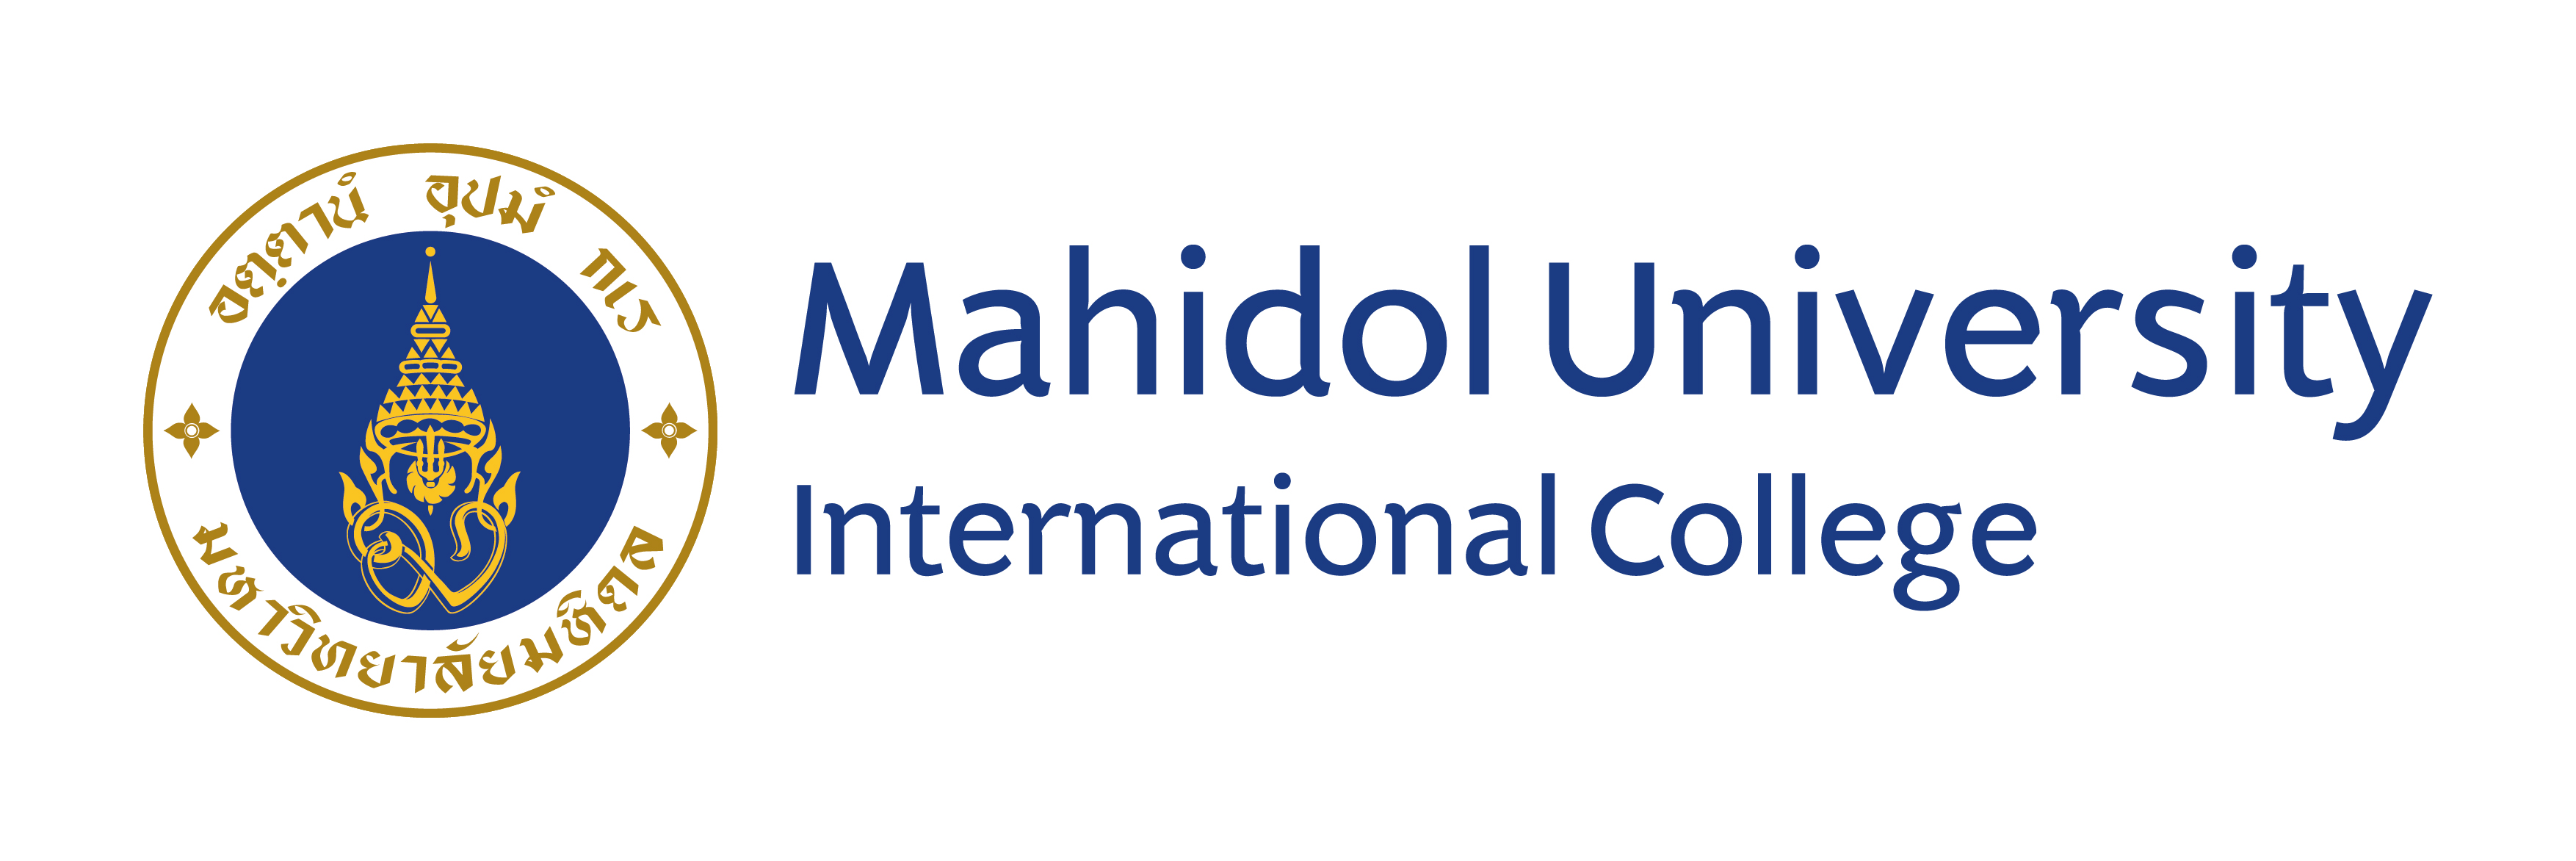 logo of mahidol university